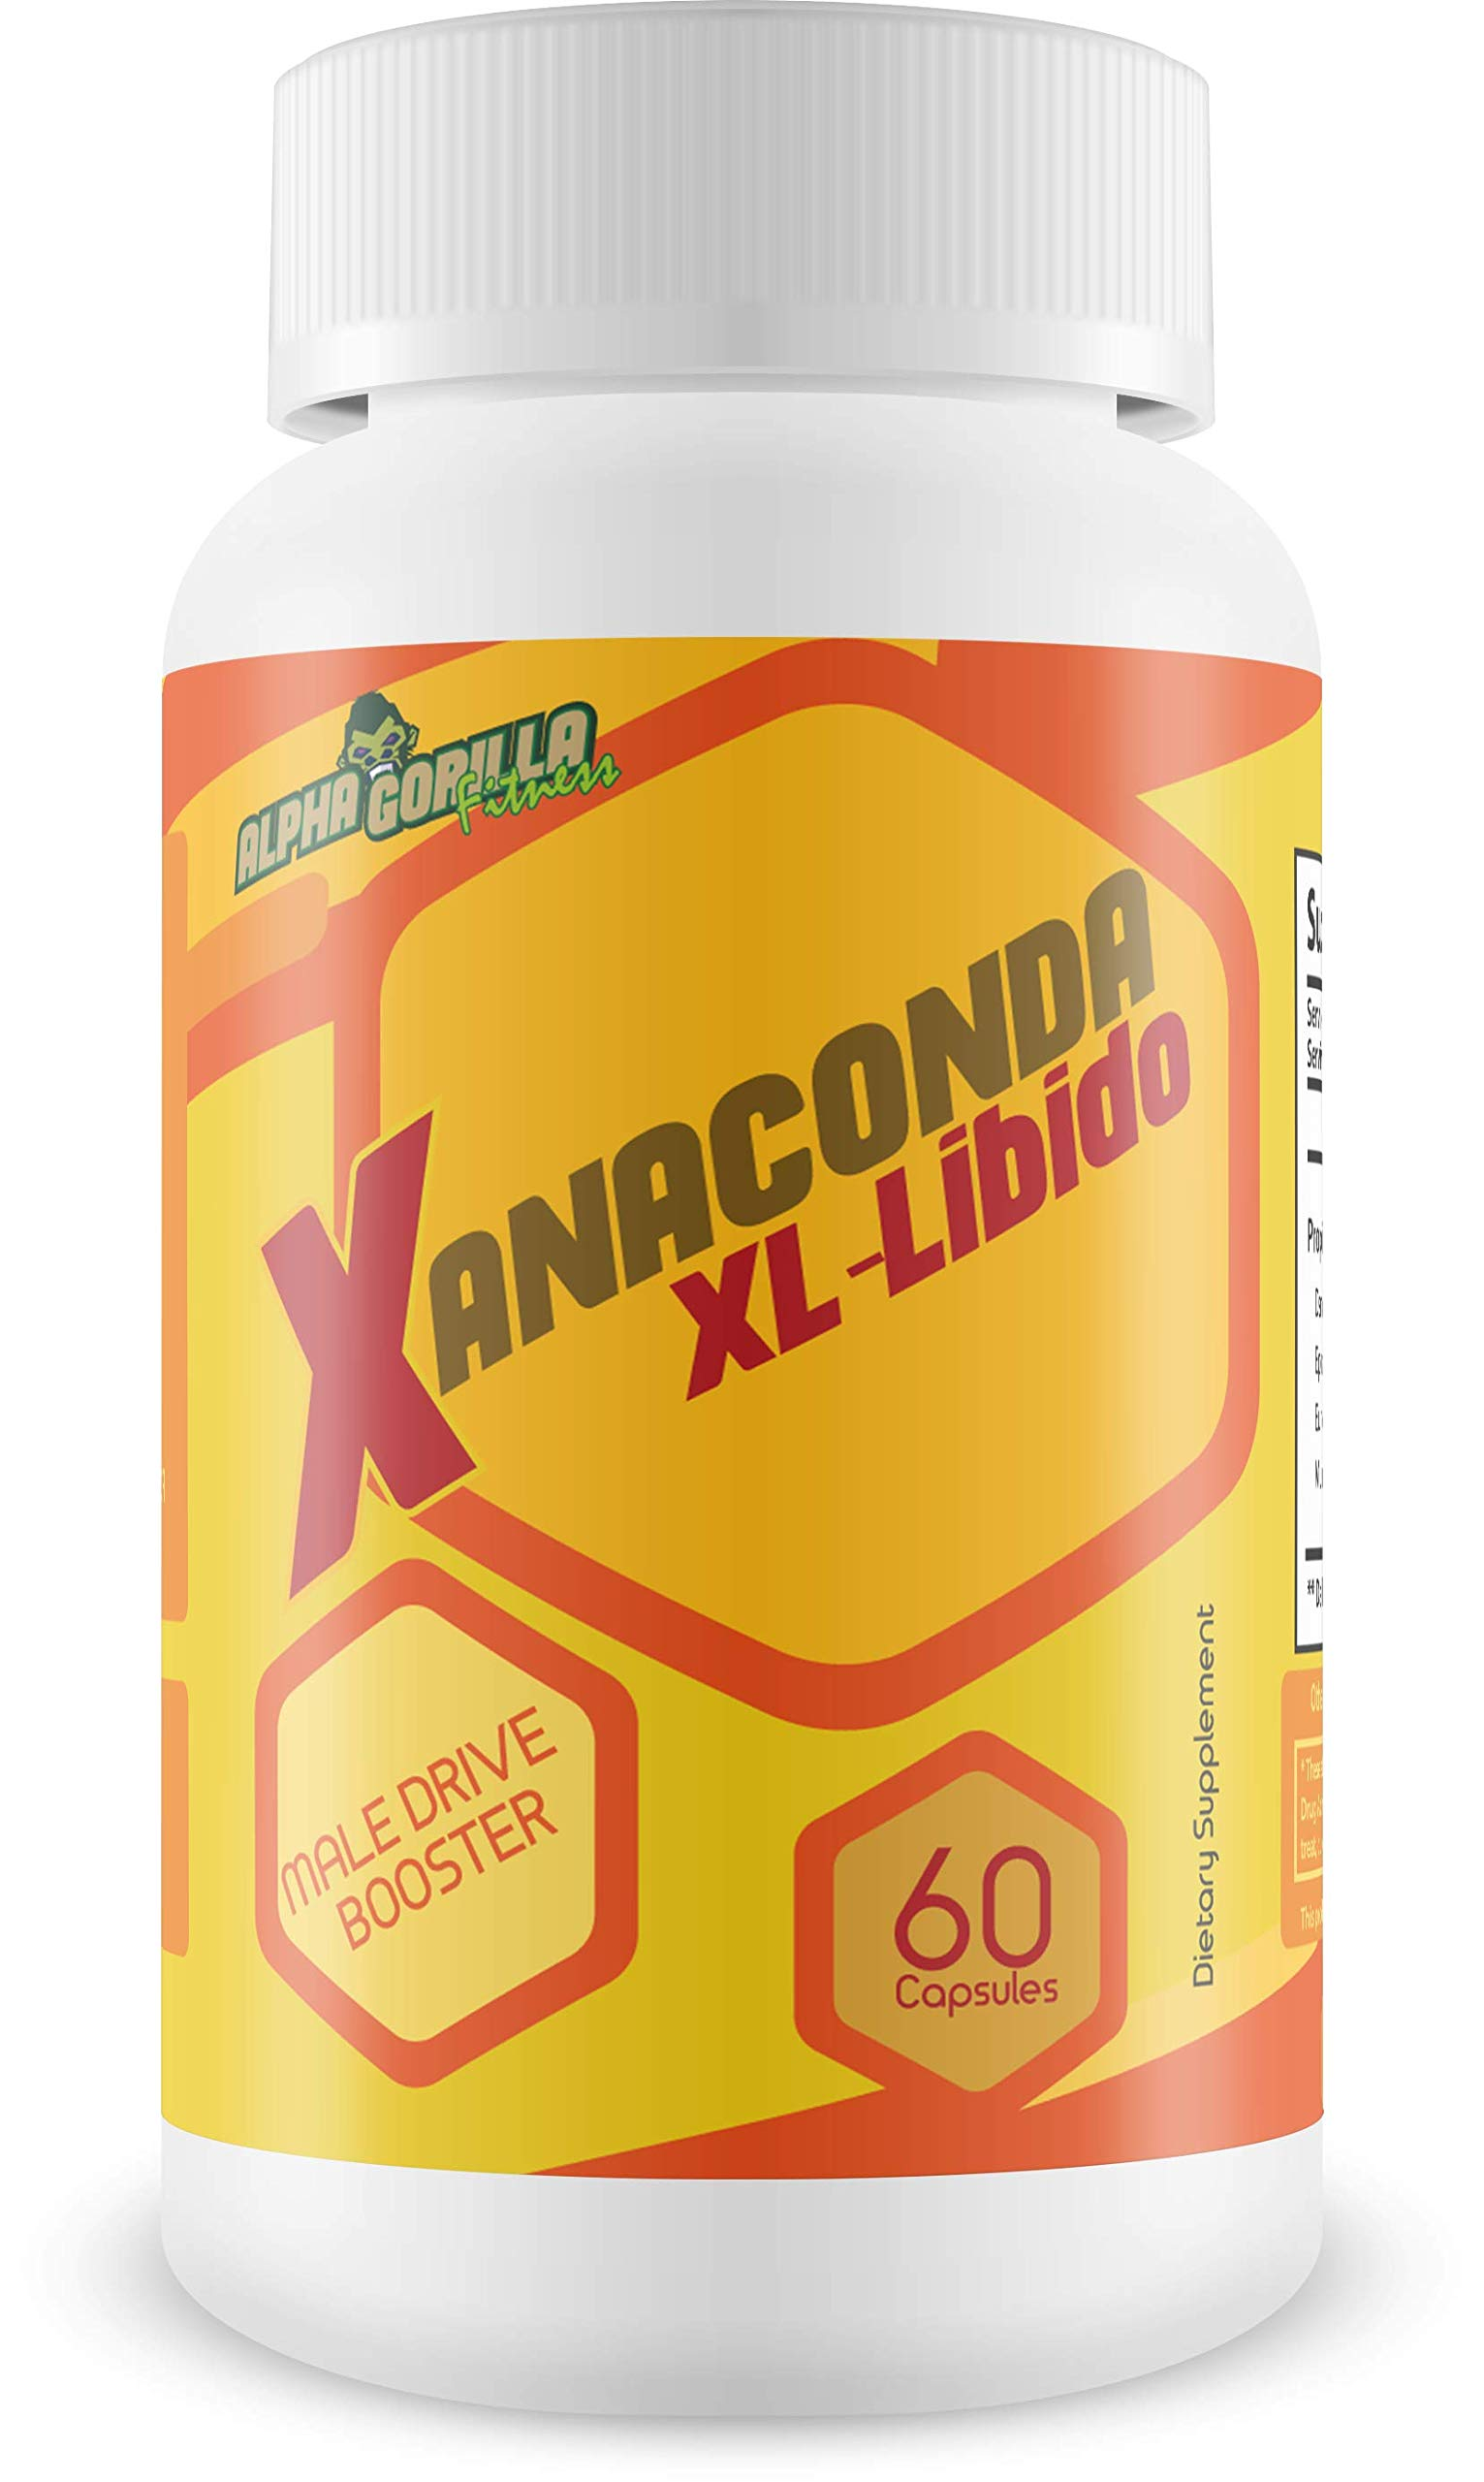 Anaconda XL Libido - Male Drive Booster - Feel The Need - Support Motivation and Purpose - Help Feel Greater Sensation - Life Deserves to be Climactic - Paltrox RX Free Blend - Unleash The Beast